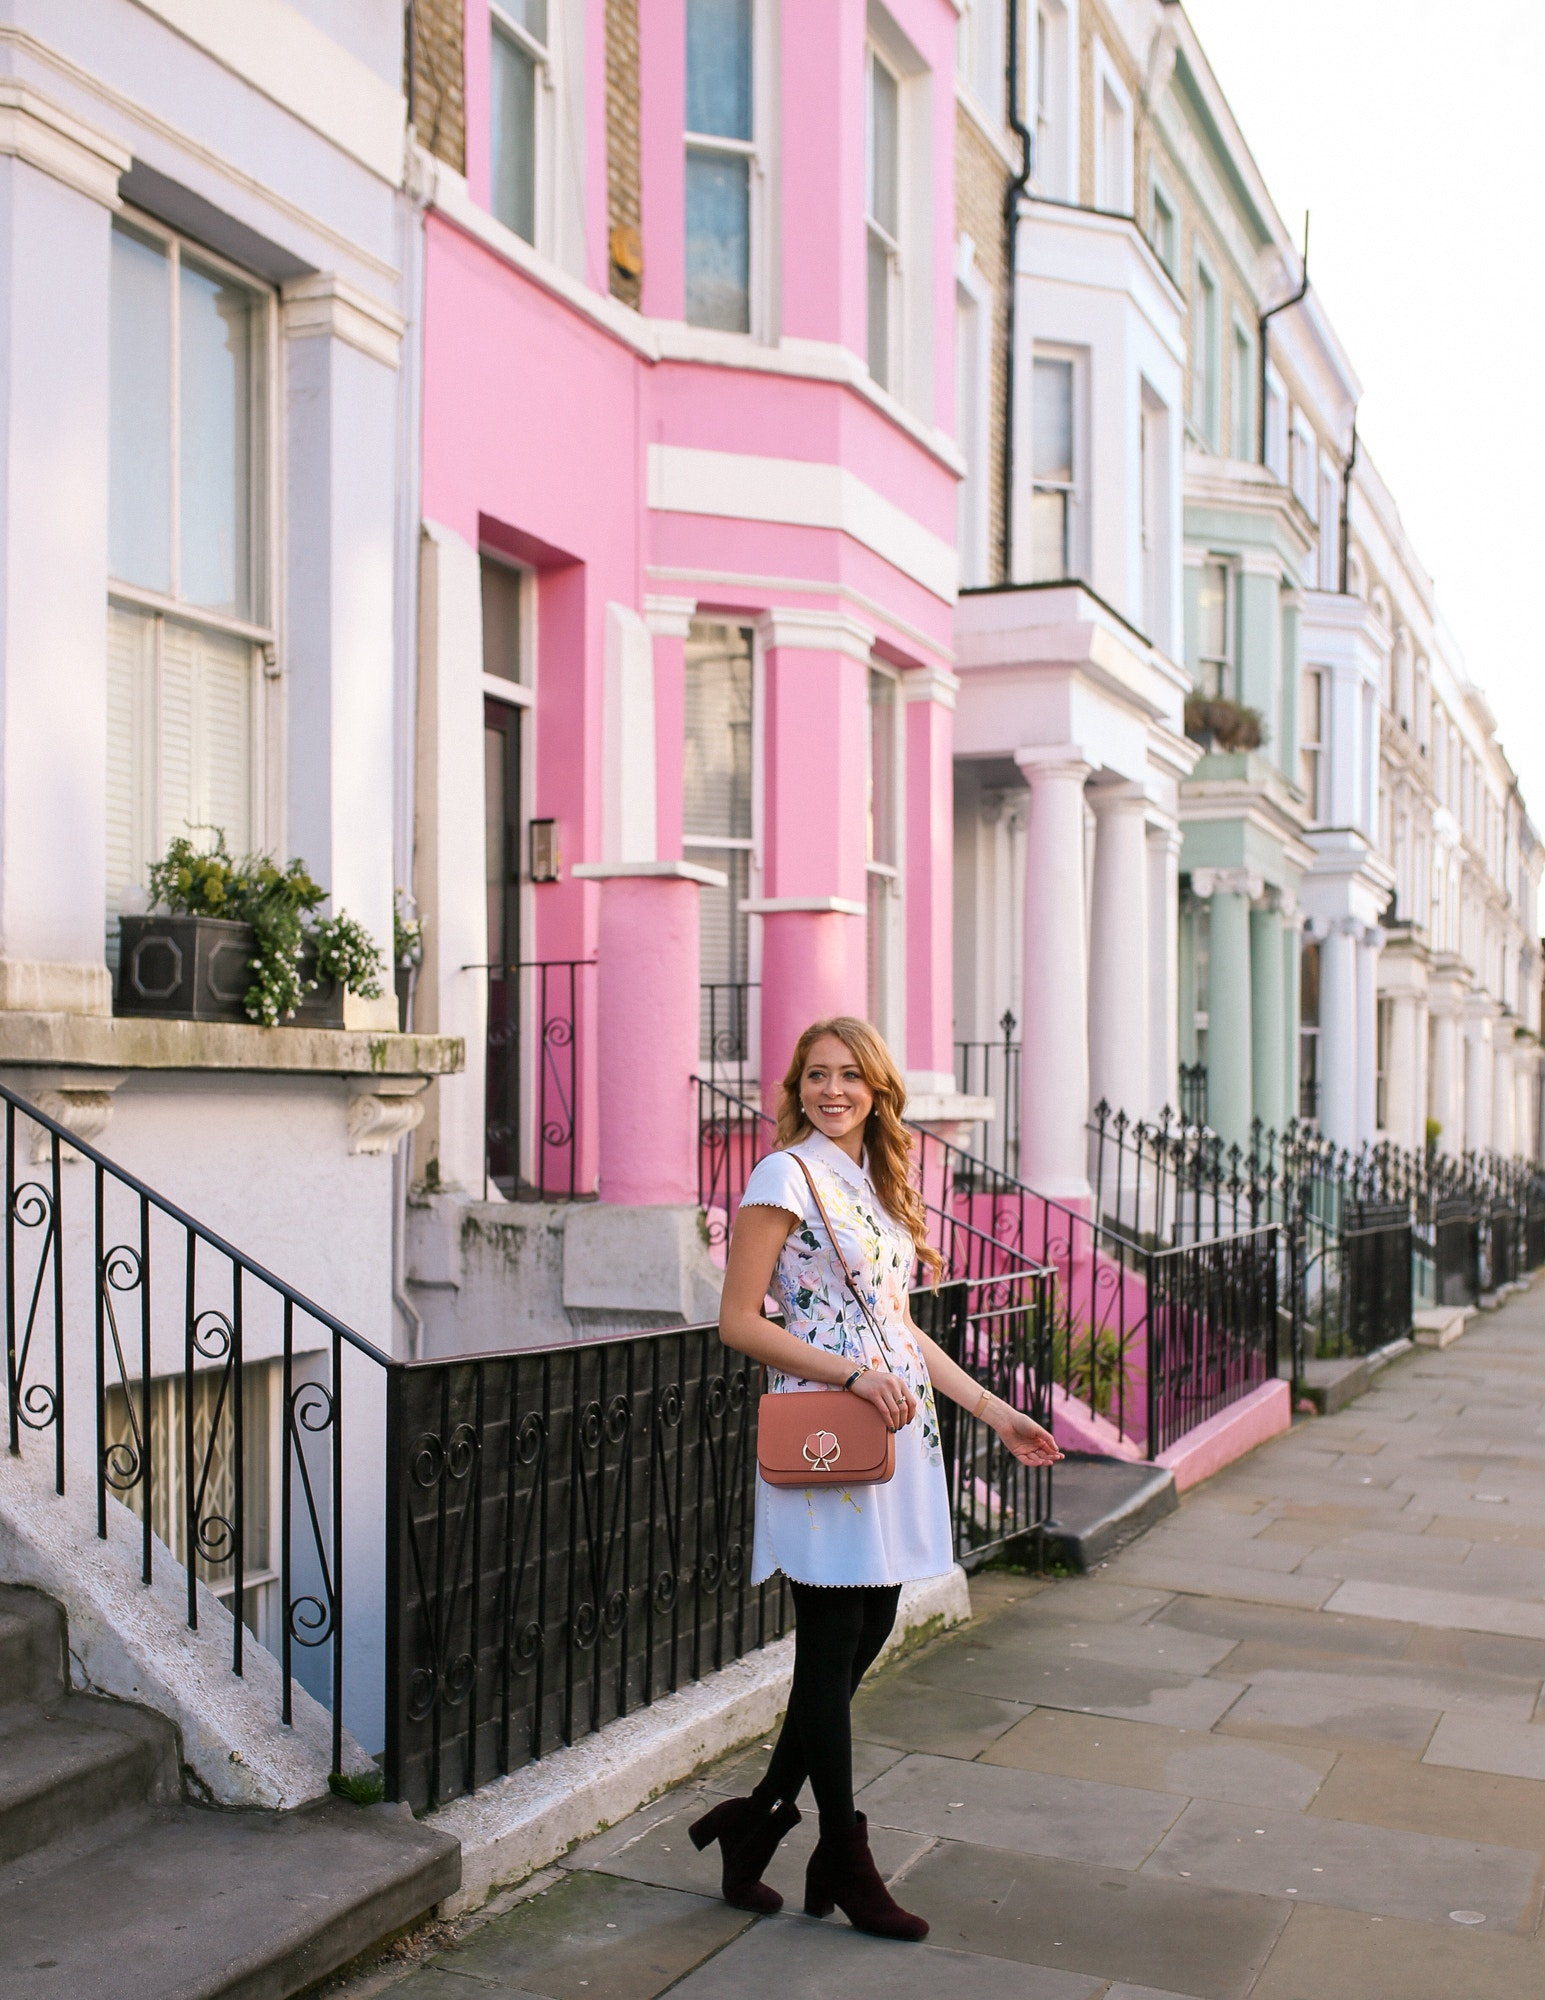 Notting Hill is full of colourful houses that are perfect for photos. I wore a Ted Baker dress and Kate Spade Nikola bag to fit in with my feminine surroundings.